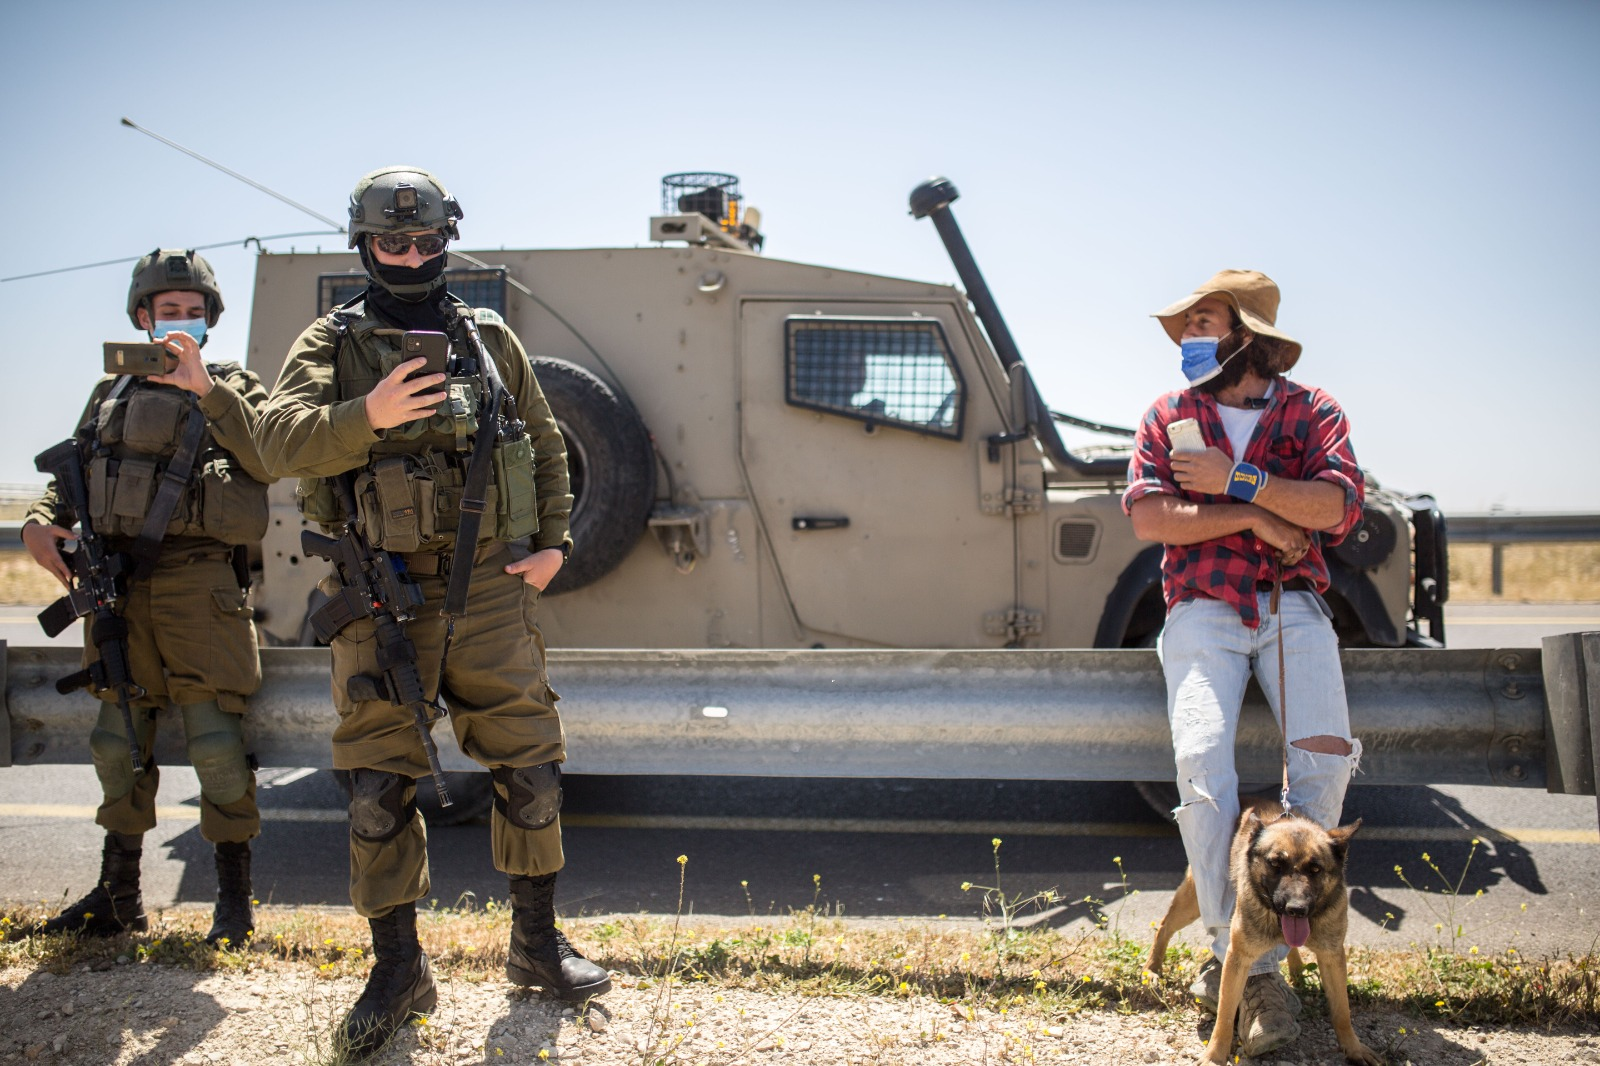 An Israeli settler overseeing the development activities in Ein al-Beida in the West Bank, joined by soldiers during construction, April 15, 2021 (Emily Glick)